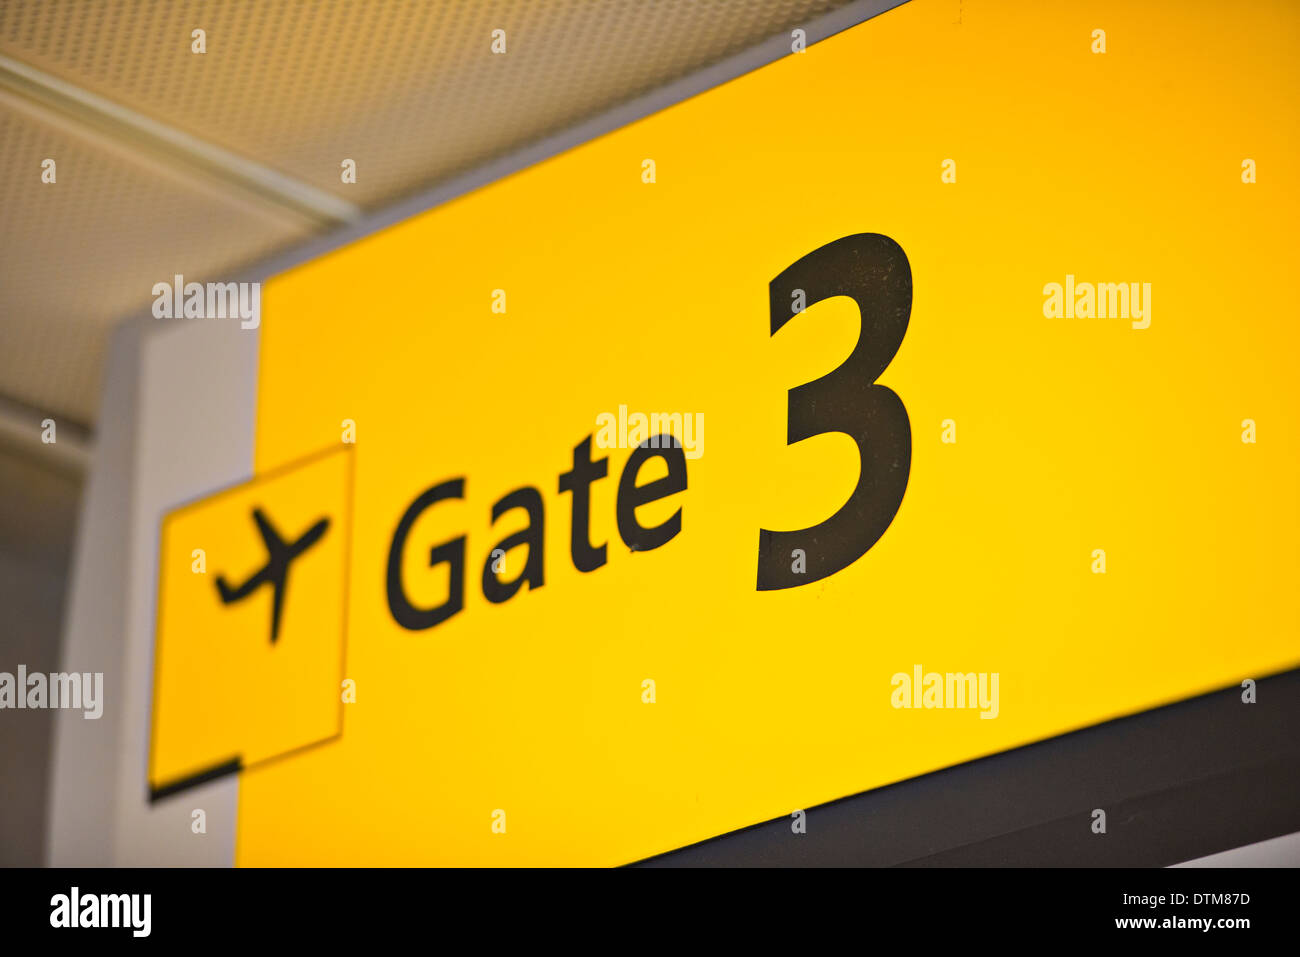 Gate 3 sign at an airport. - Stock Image